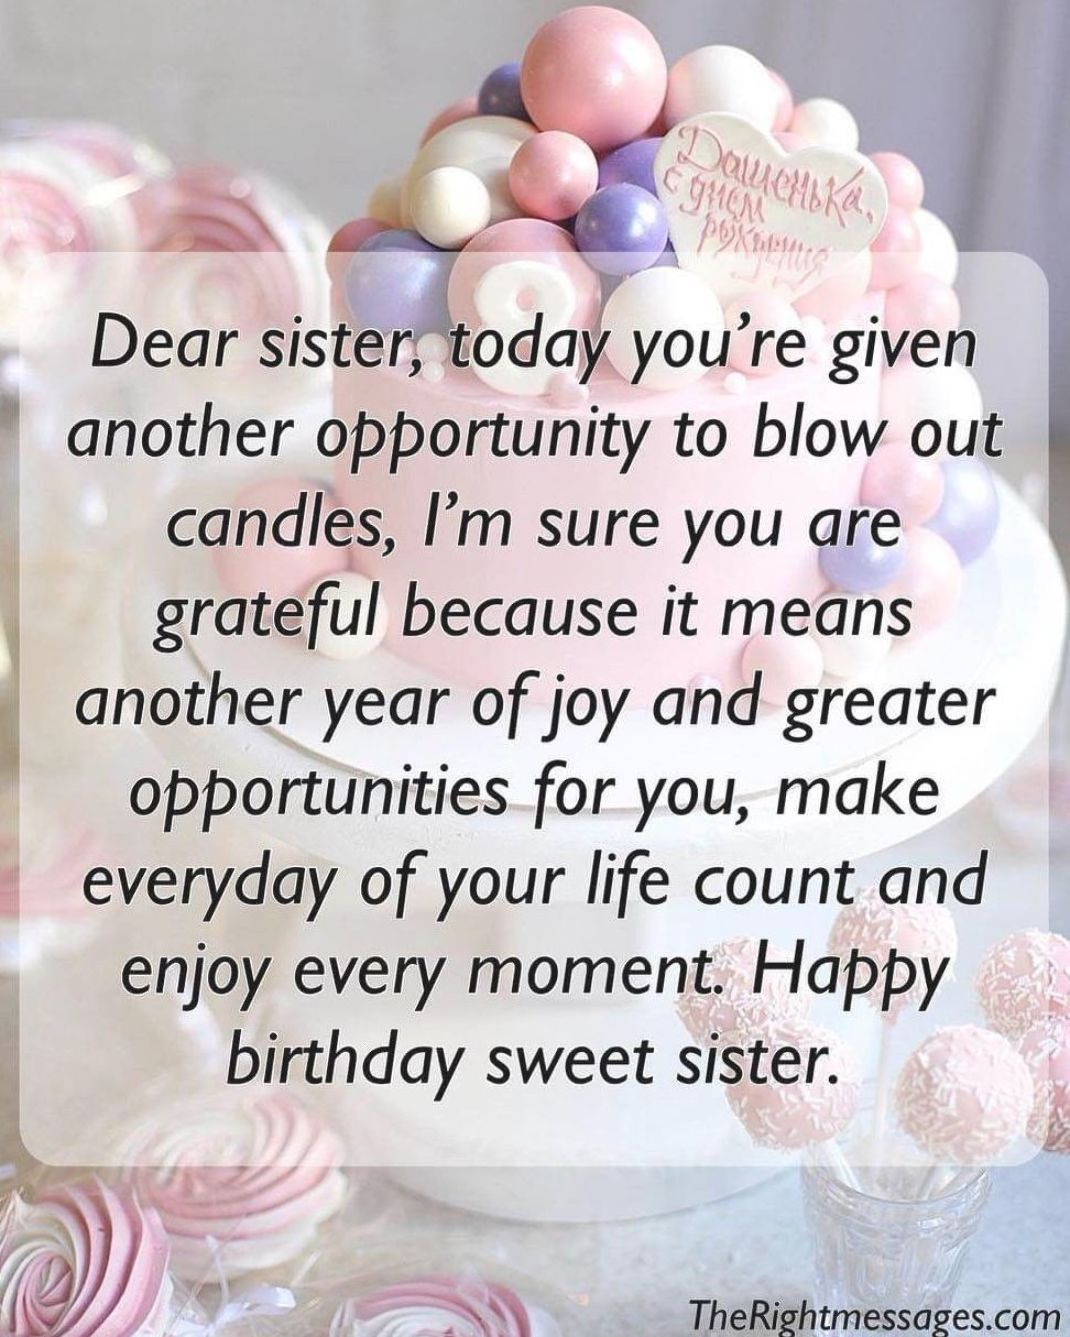 Pin By Shieulyn On Birthday Wishes Long Birthday Wishes For Sister Wishes For Sister Long Birthday Wishes Best of happy birthday to my sister